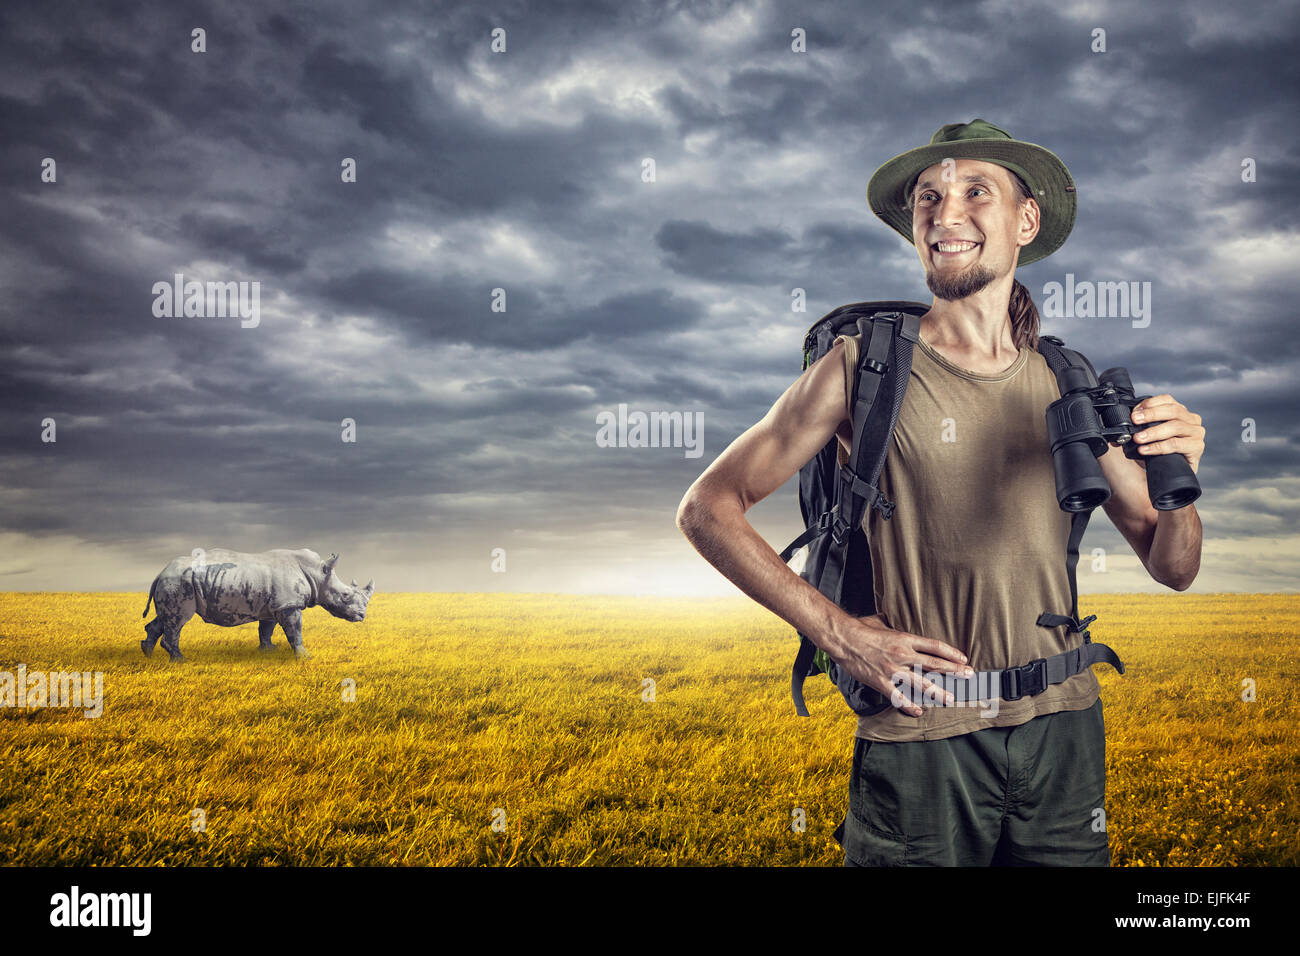 Man with binocular and rhino behind in grassland at sunset overcast sky - Stock Image